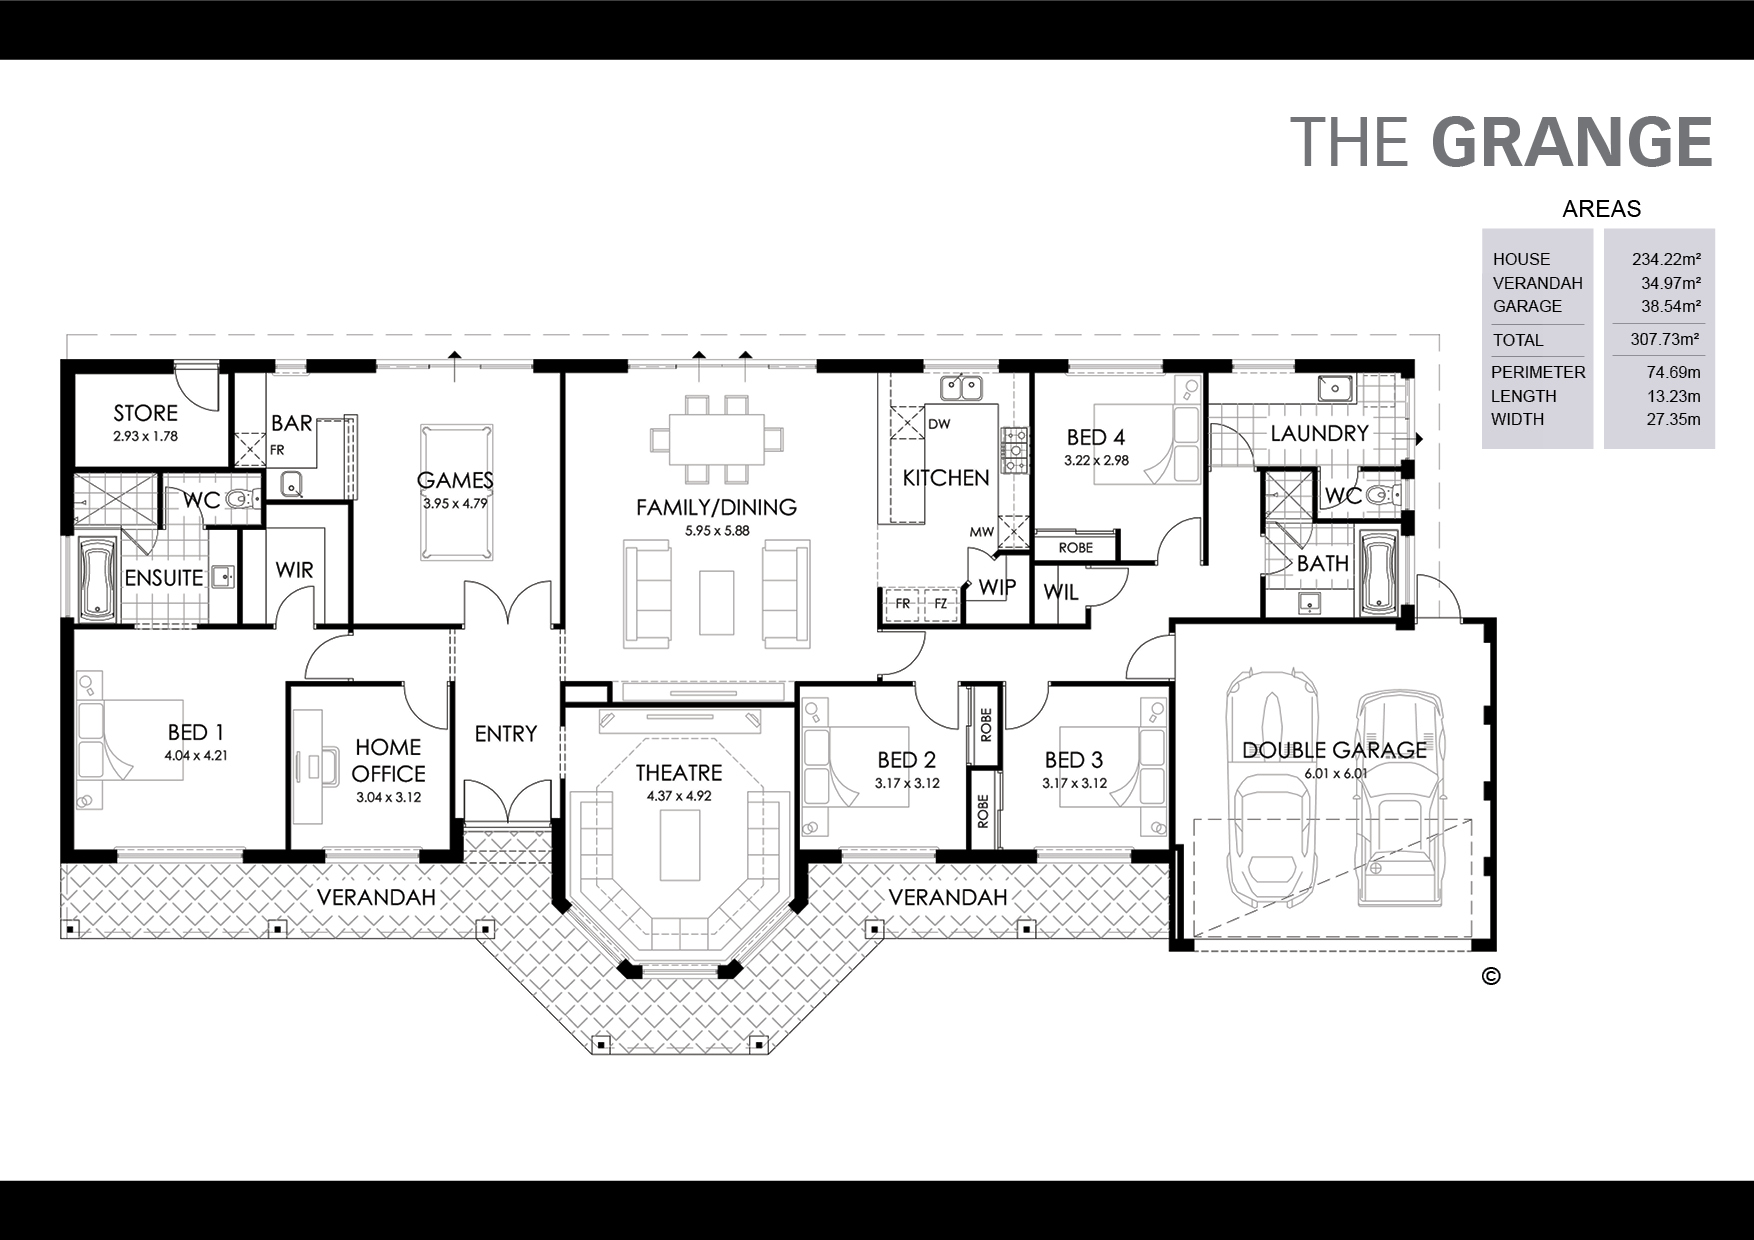 The Grange Floorplan